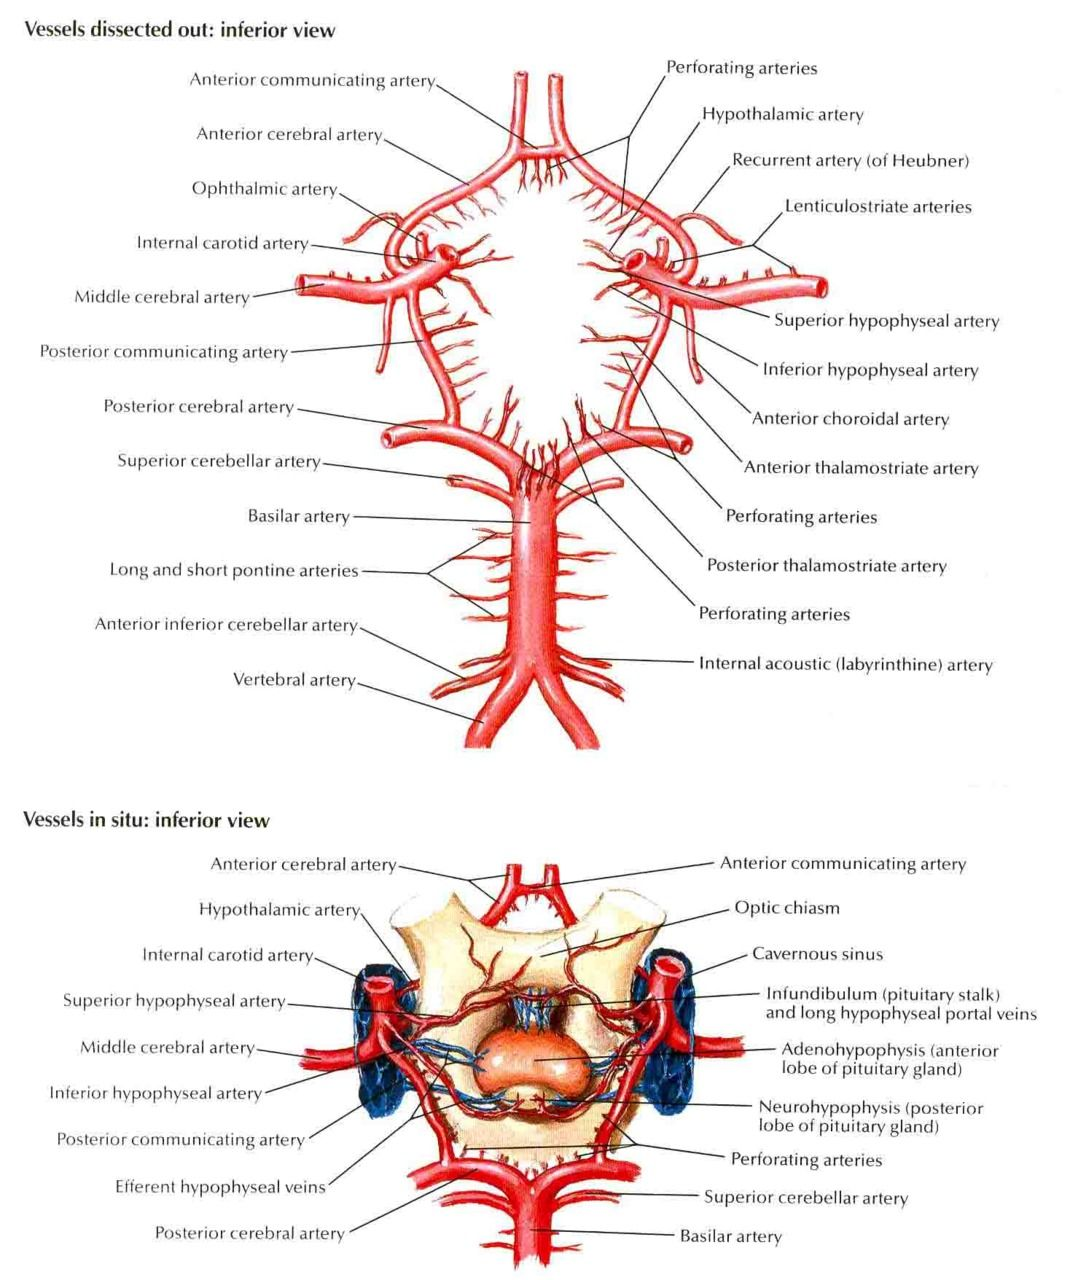 Circle of Willis | NEUROLOGY | Pinterest | Medicina, Anatomía y Locura